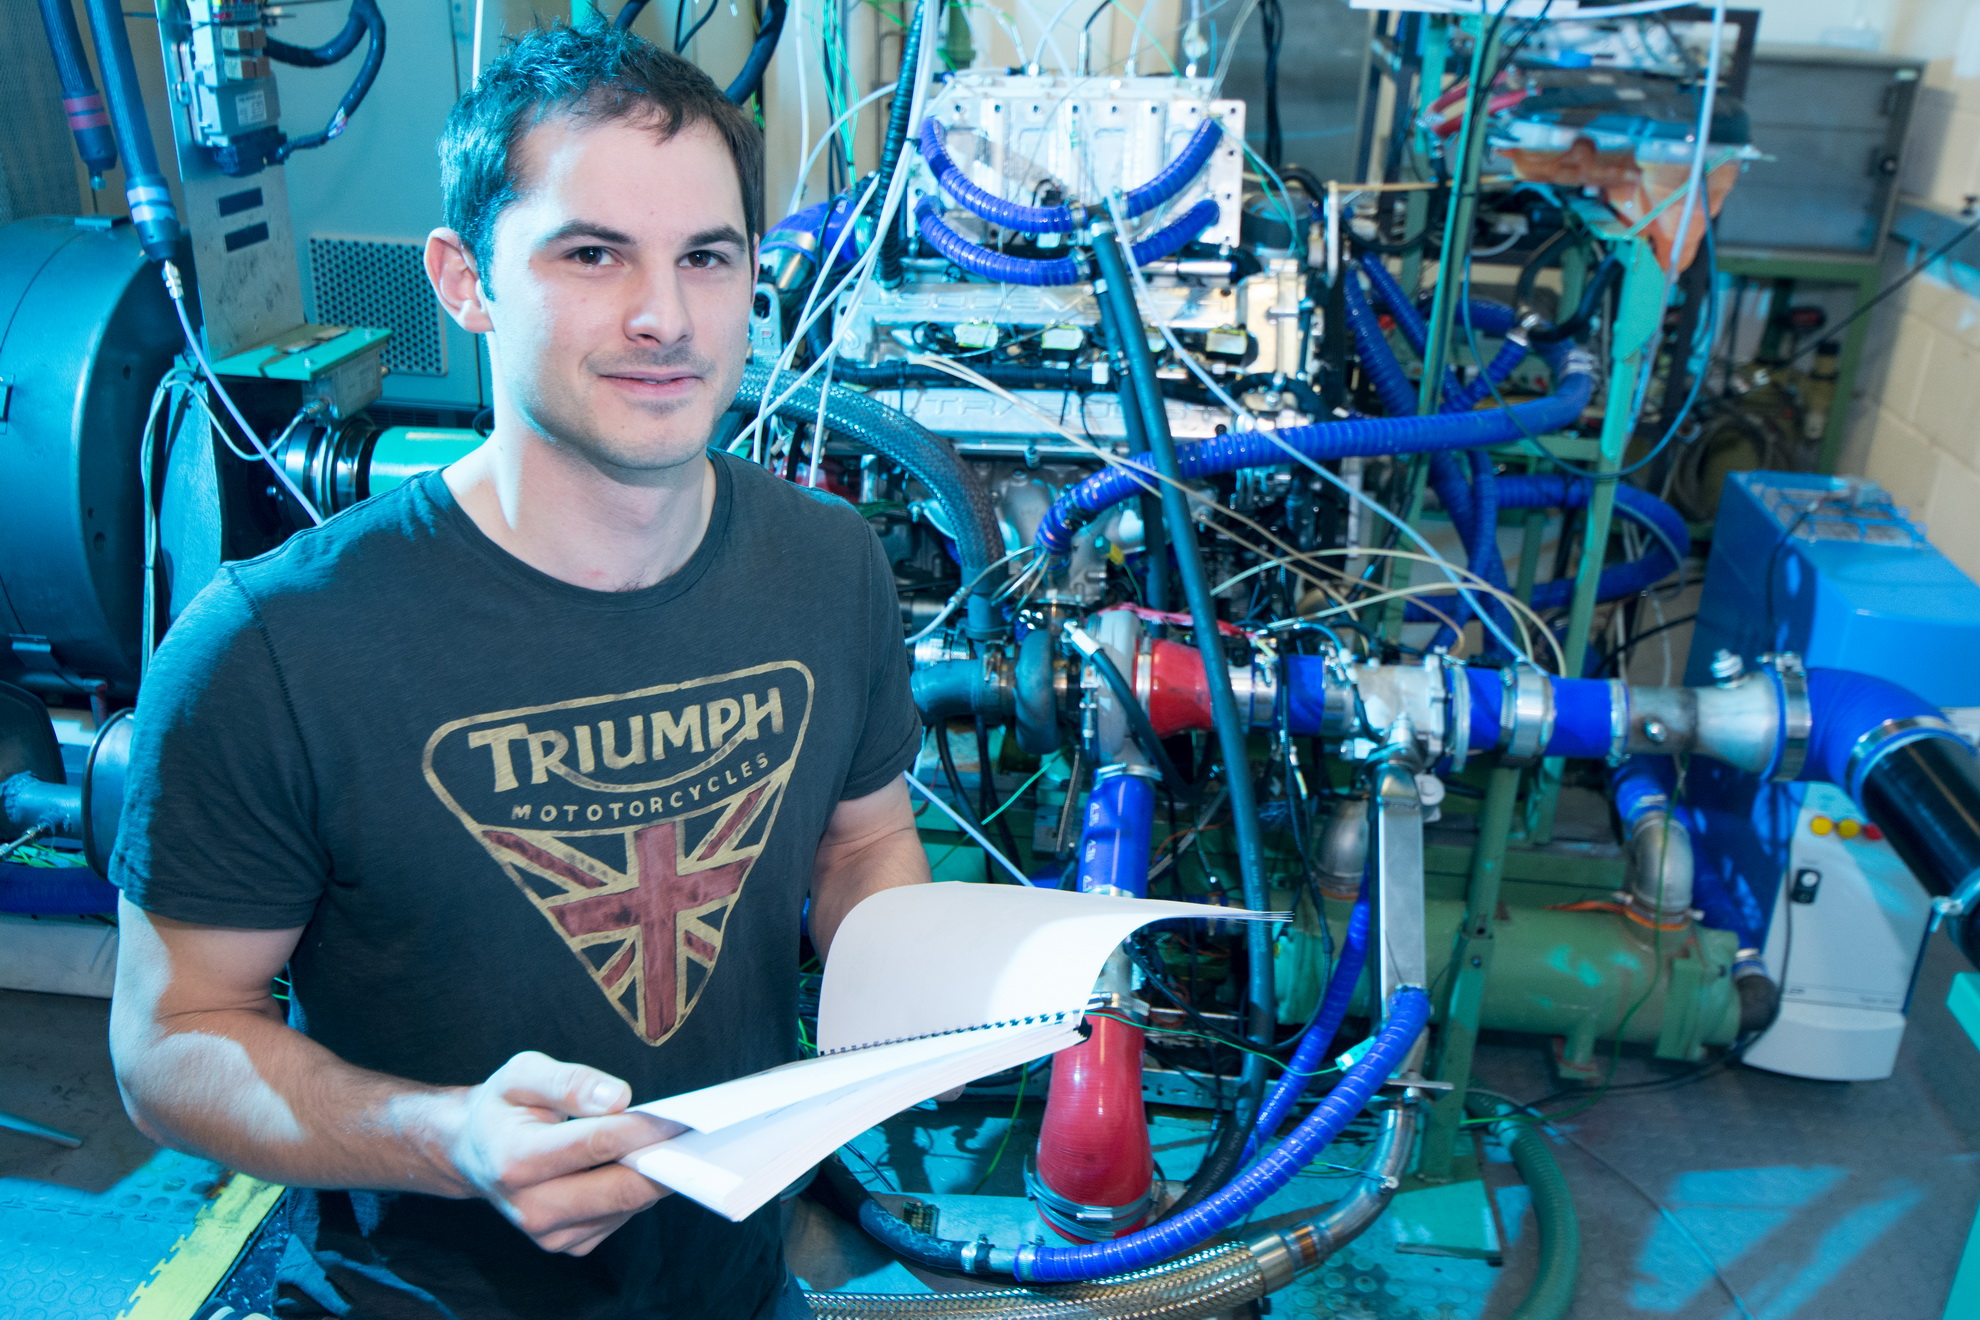 Interview With A Mechanical Engineering Student Hoping To